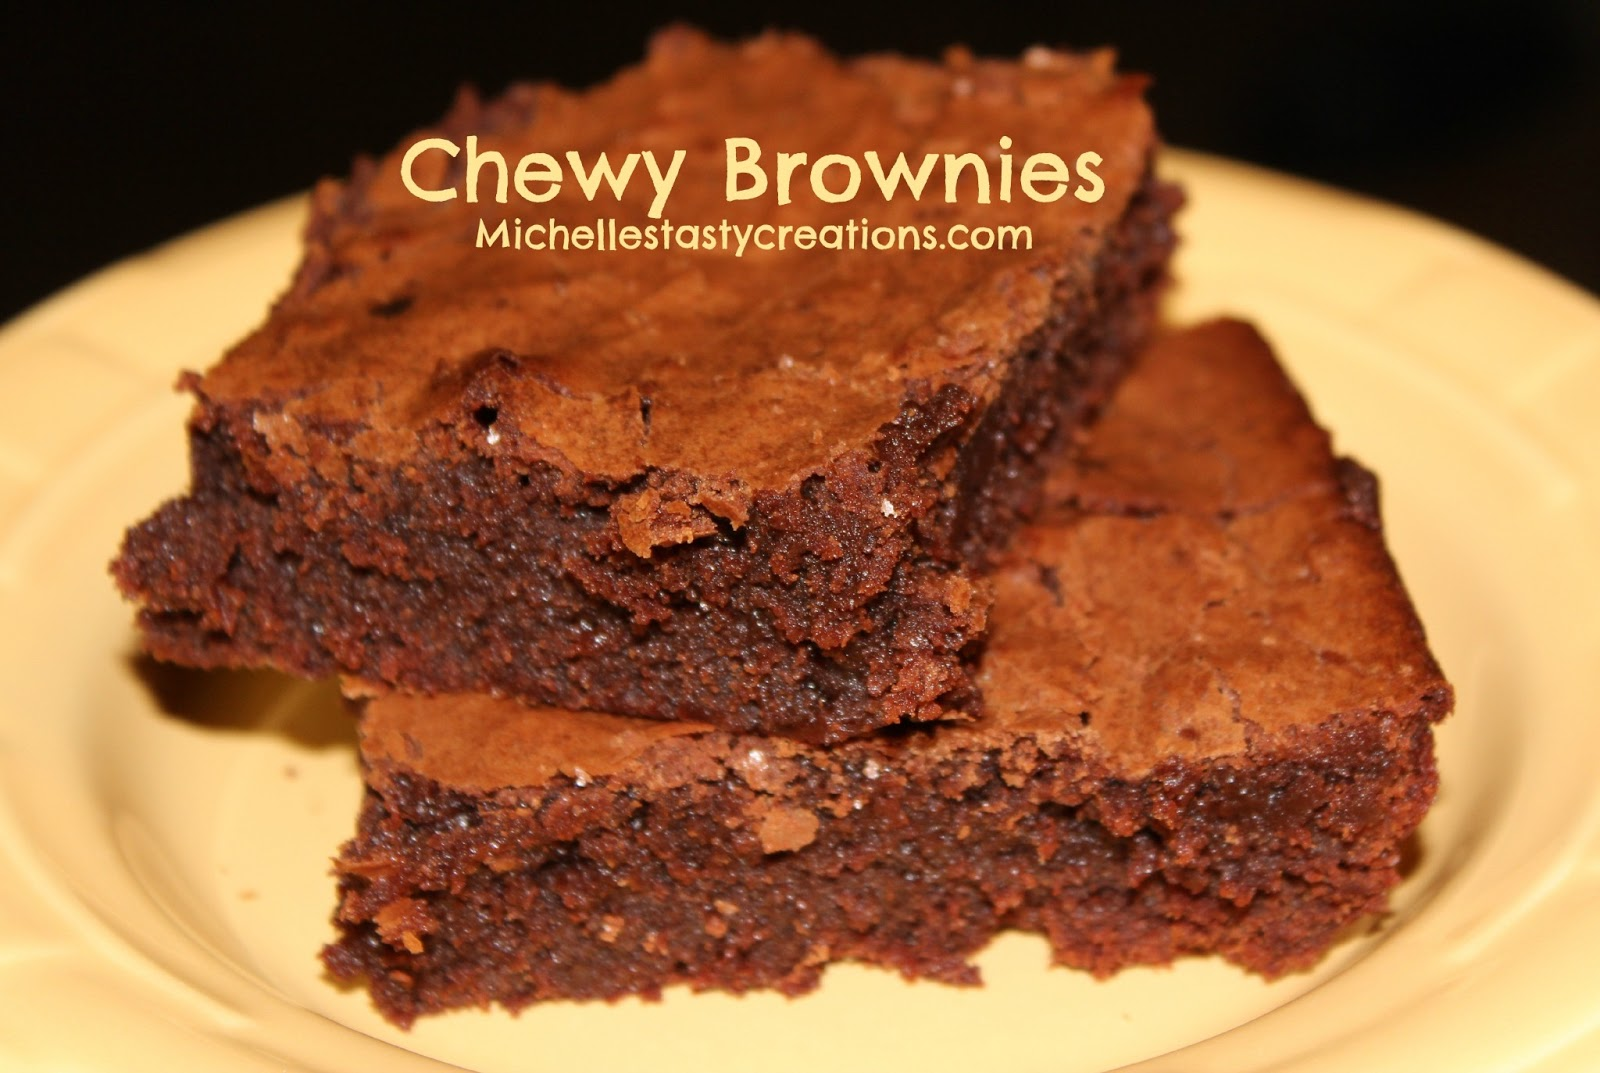 Michelle's Tasty Creations: Happy Valentine's Day and Chewy Brownies